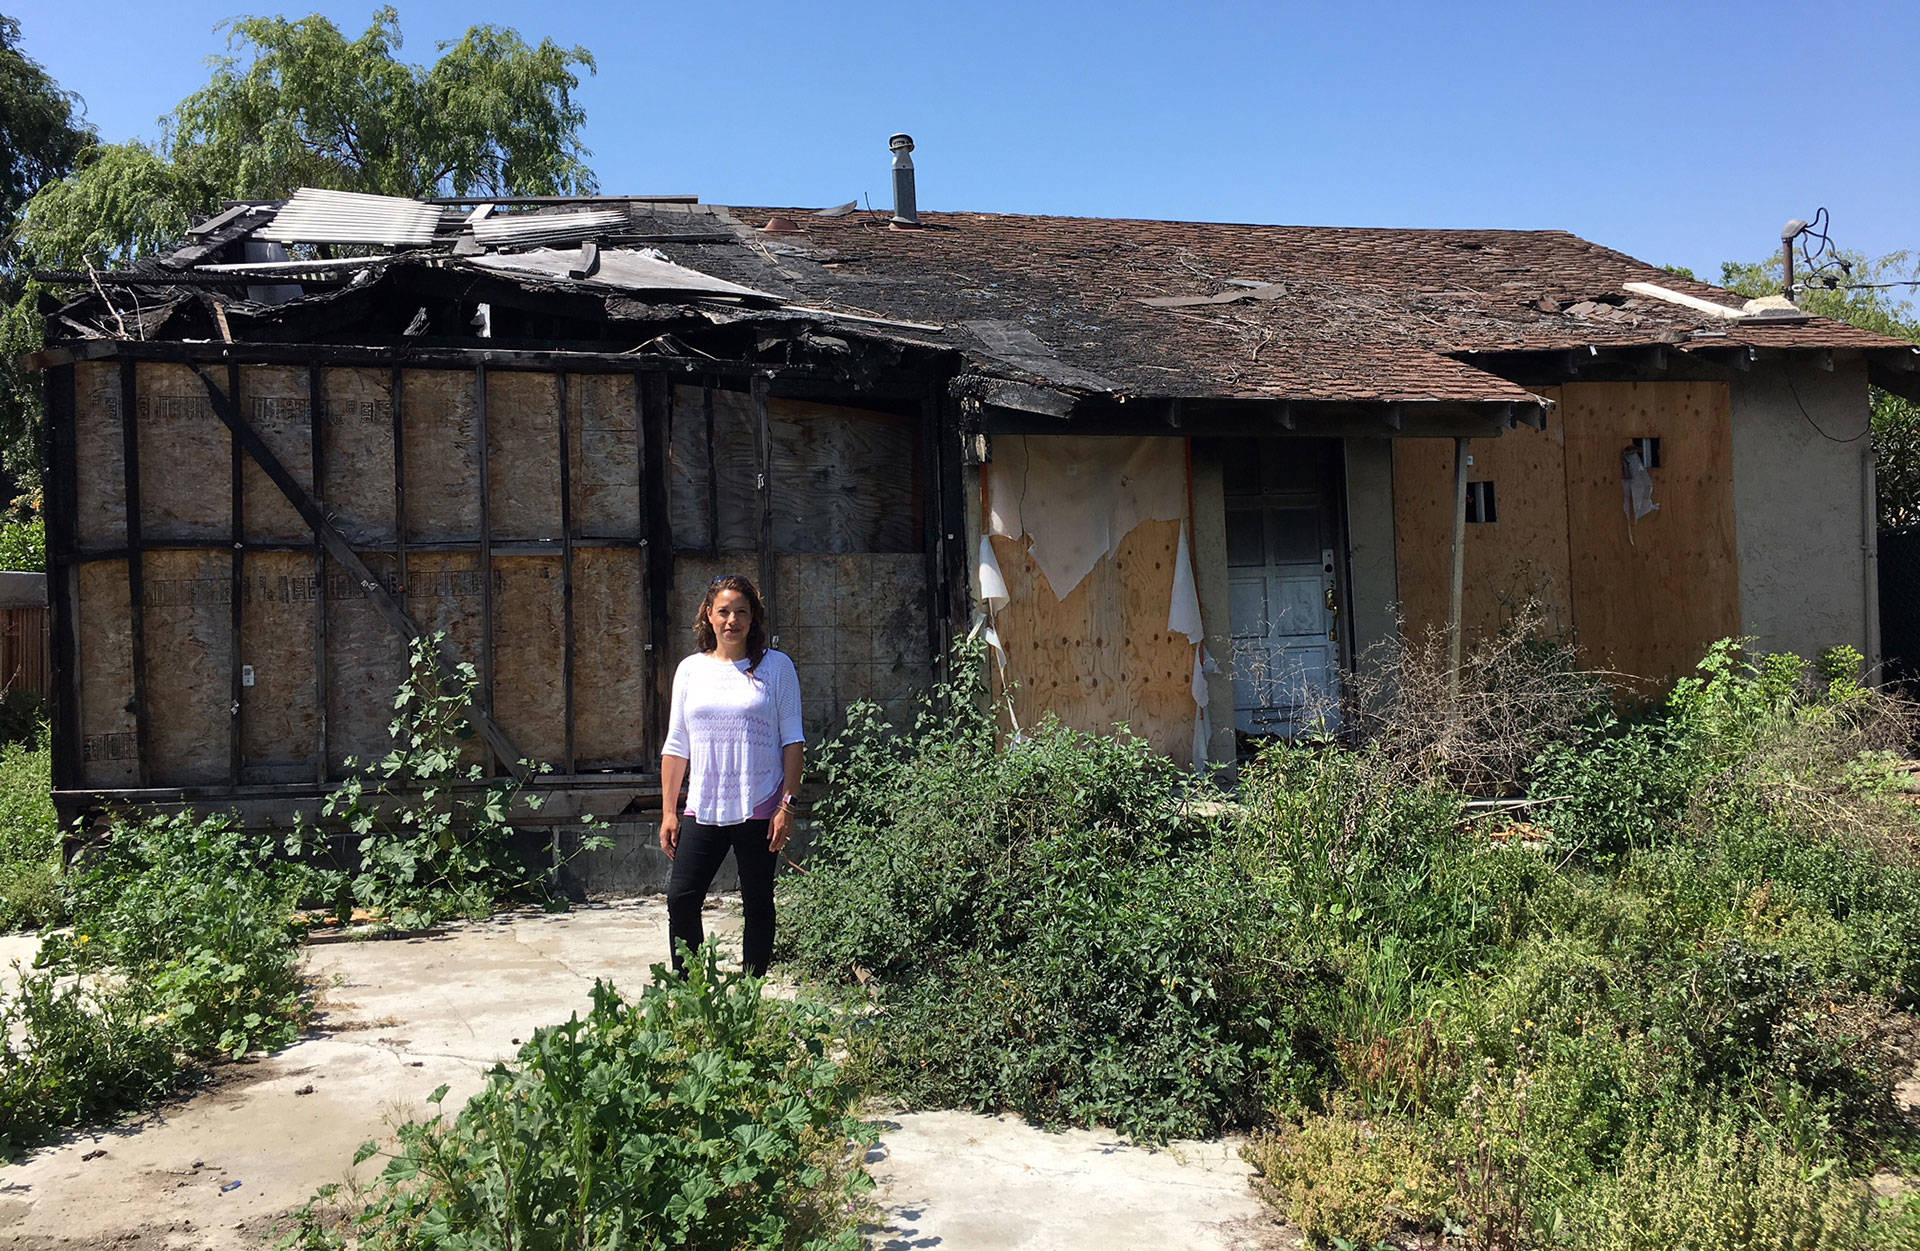 San Jose Realtor Holly Barr stands outside the burned-out house she sold for more than $900,000. Matt Levin/CALmatters